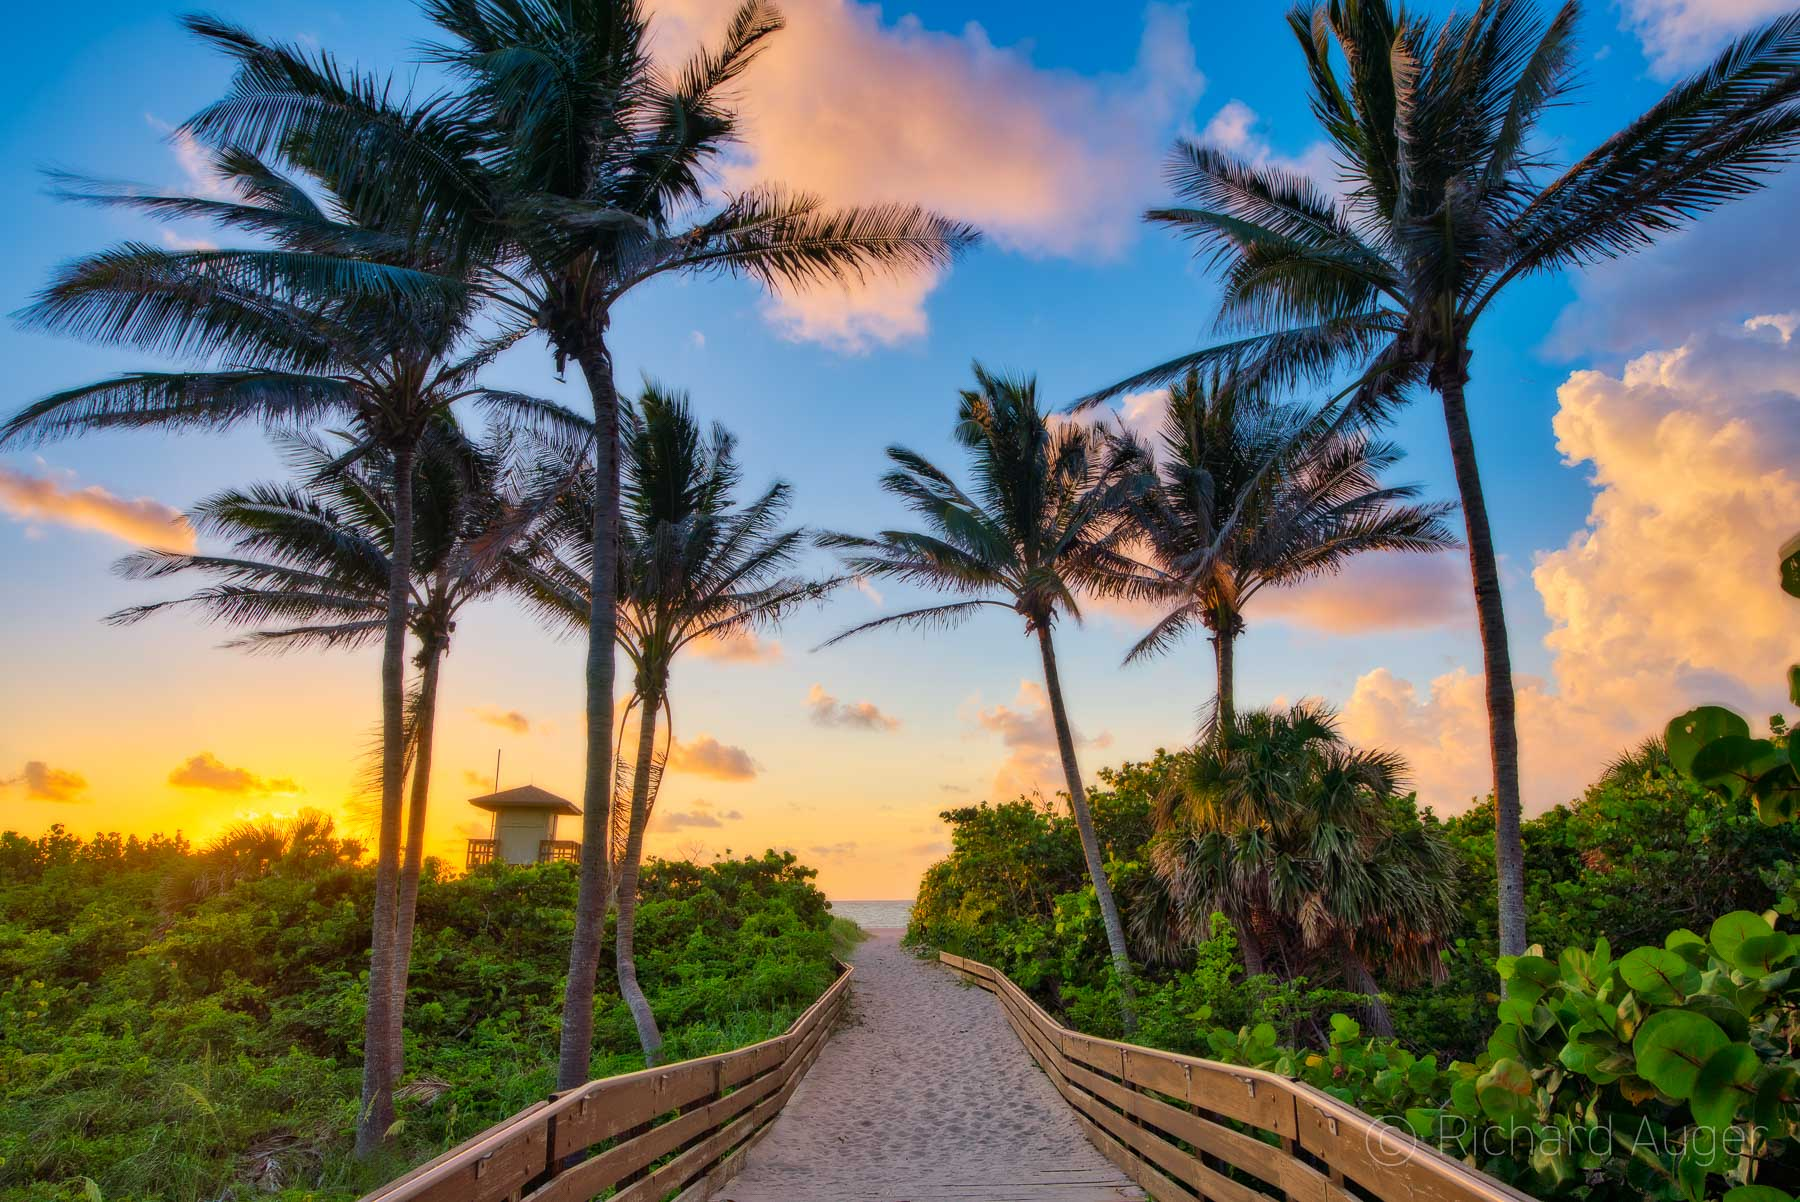 Ocean Reef Park, Riviera Beach, Florida, Sunrise, Palm Trees, Board Walk, Art, Photograph